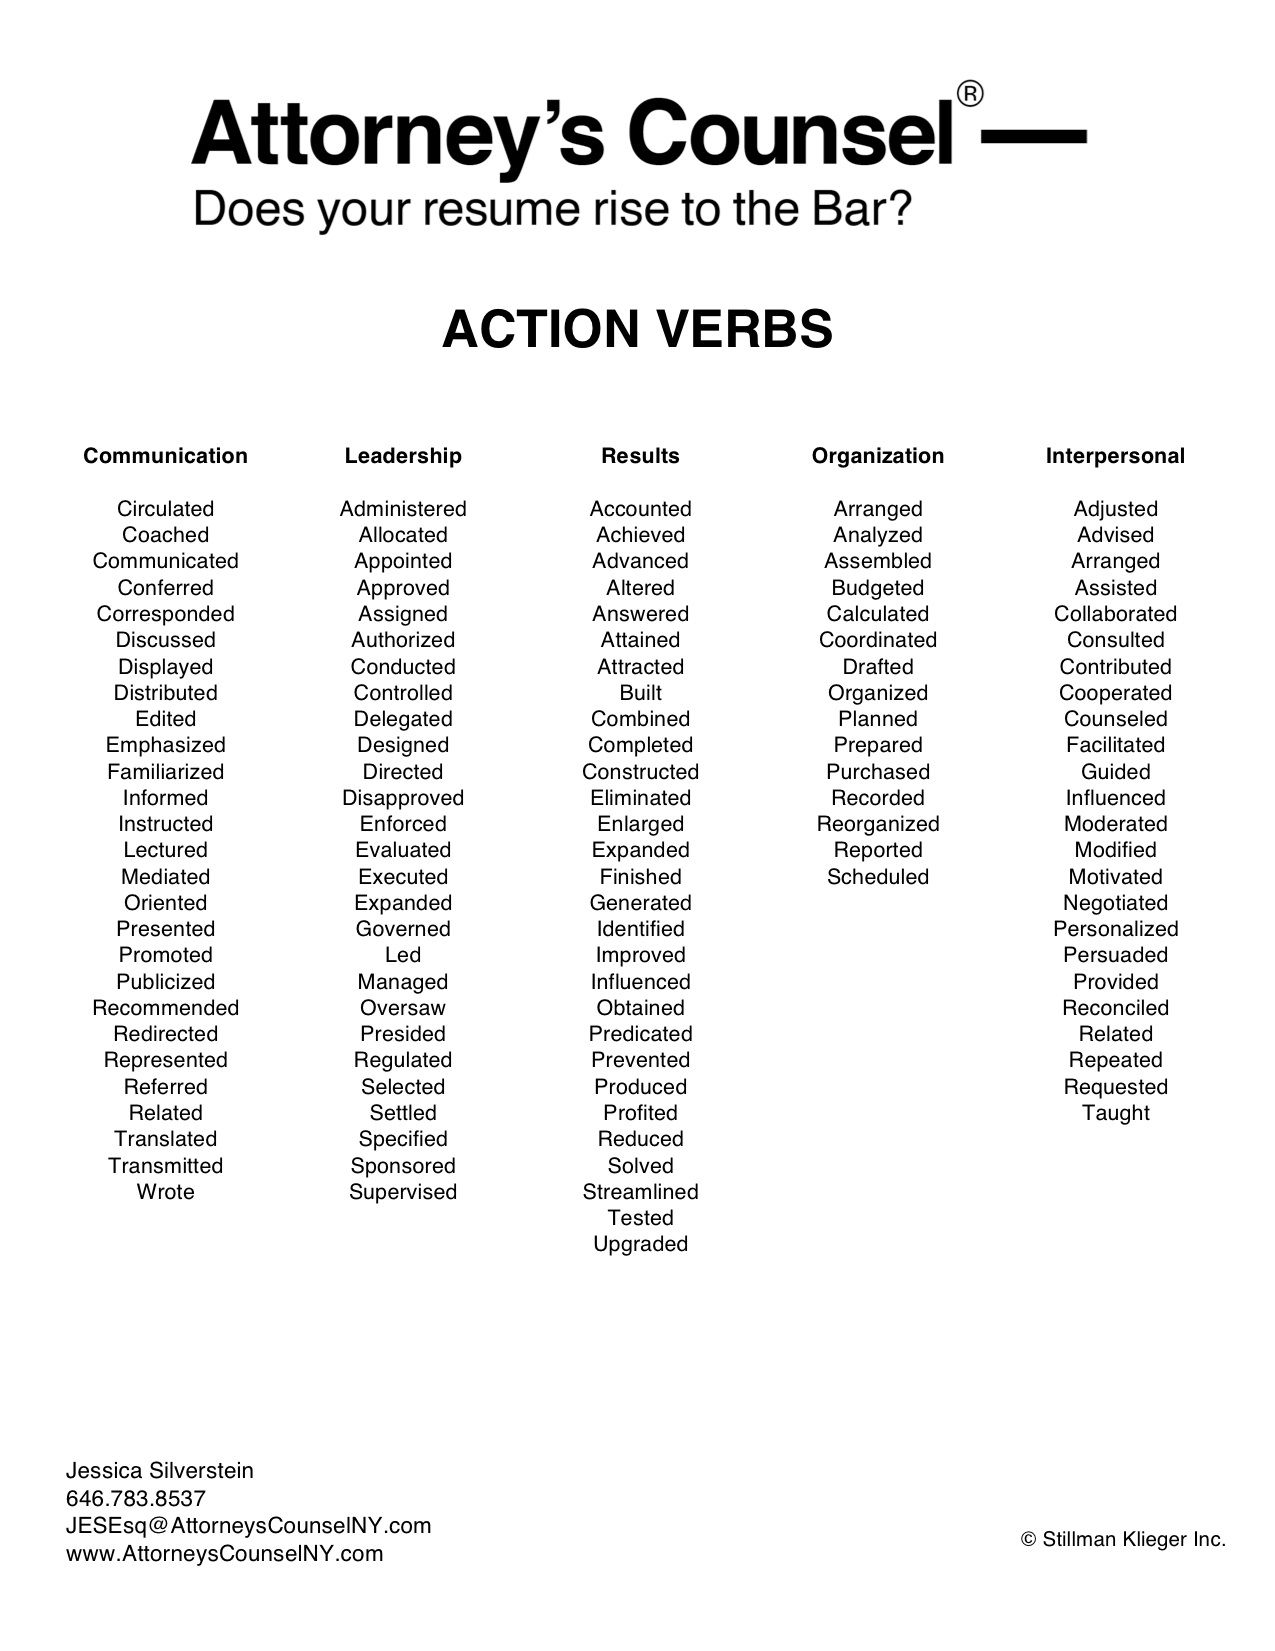 Teacher Resume Verbs Action Verbs To Use In Resume Talktomartyb